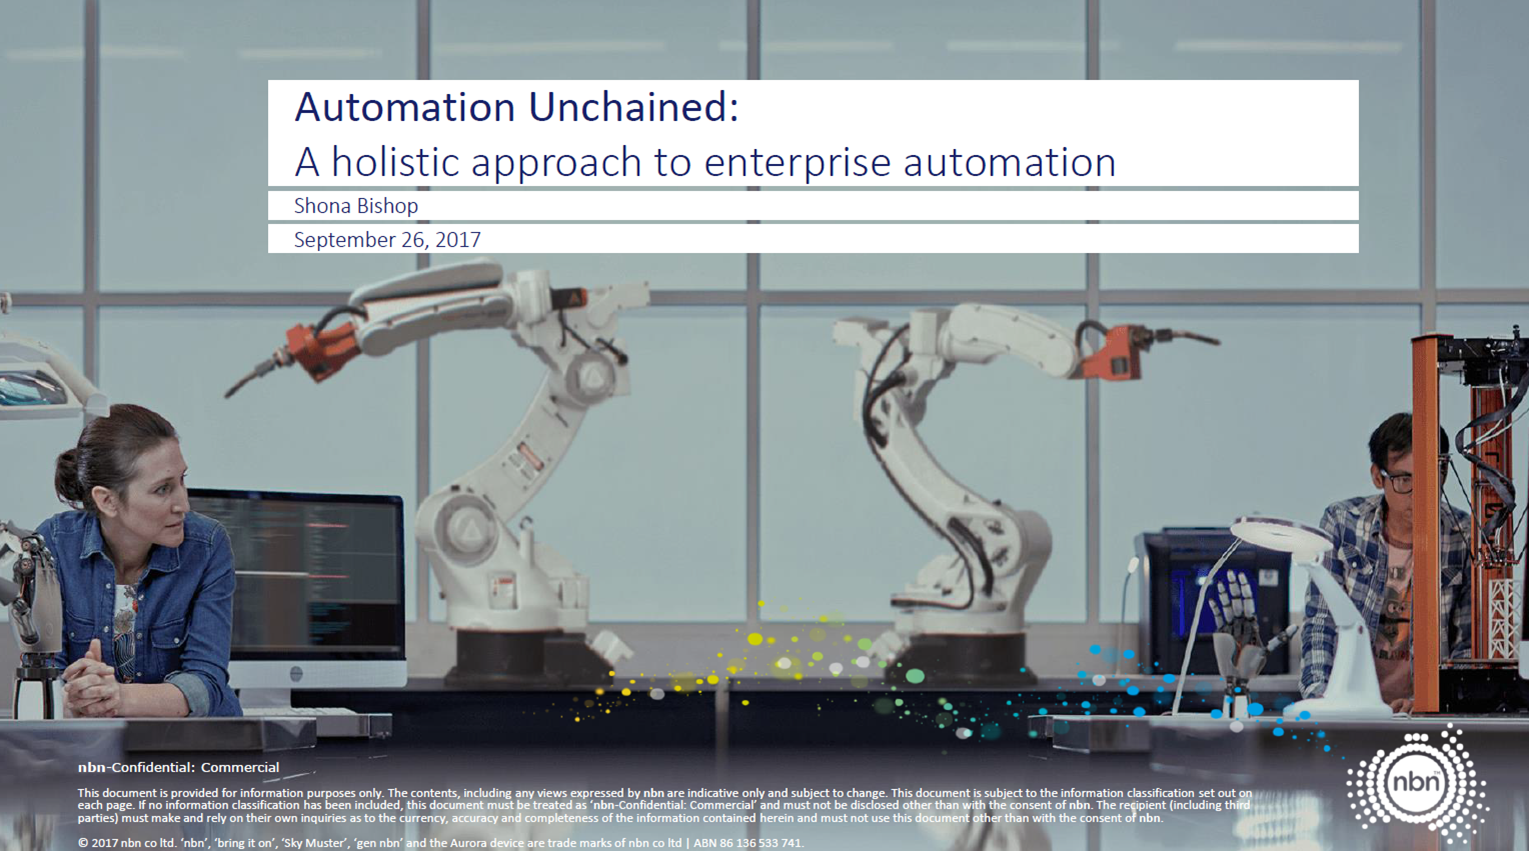 Automation Unchained: A holistic approach to enterprise automation